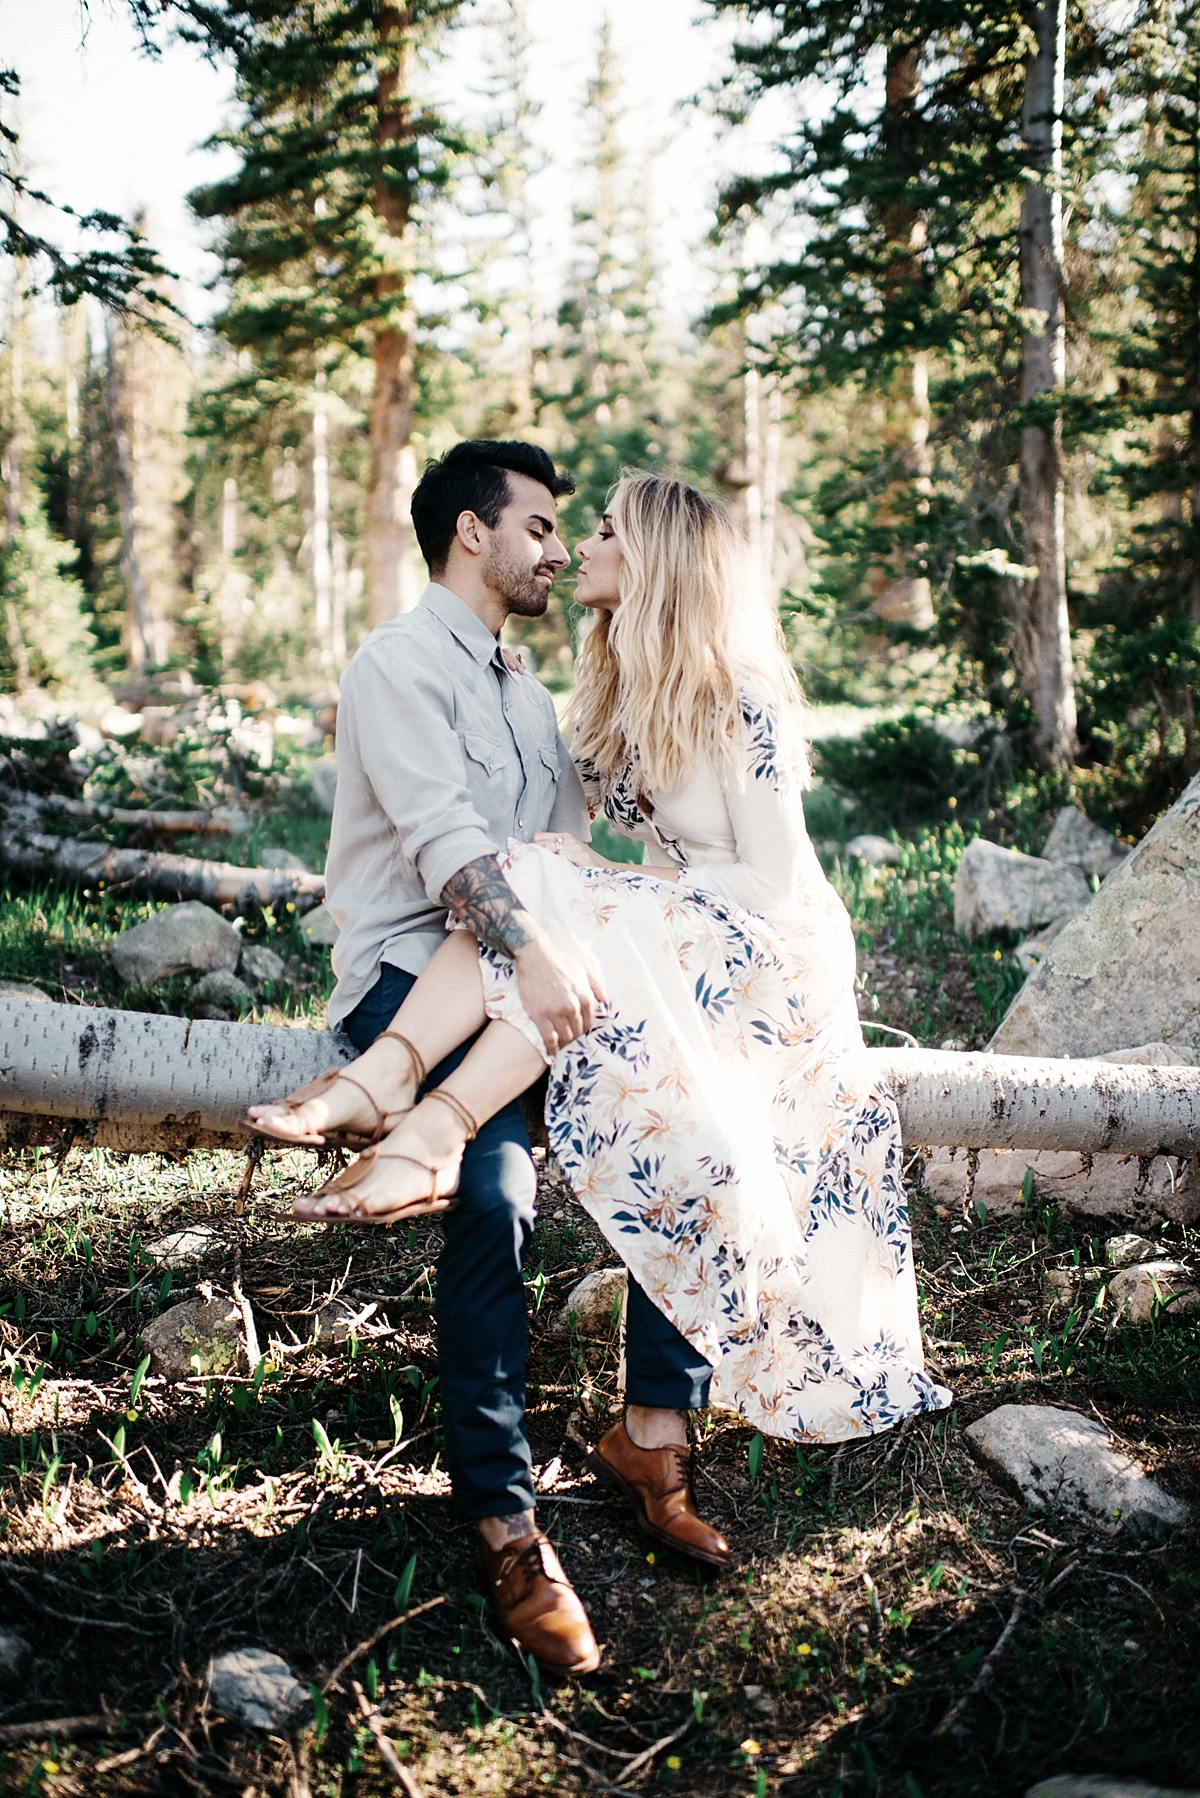 Blush-photography-nicolette-colby-engagements-134